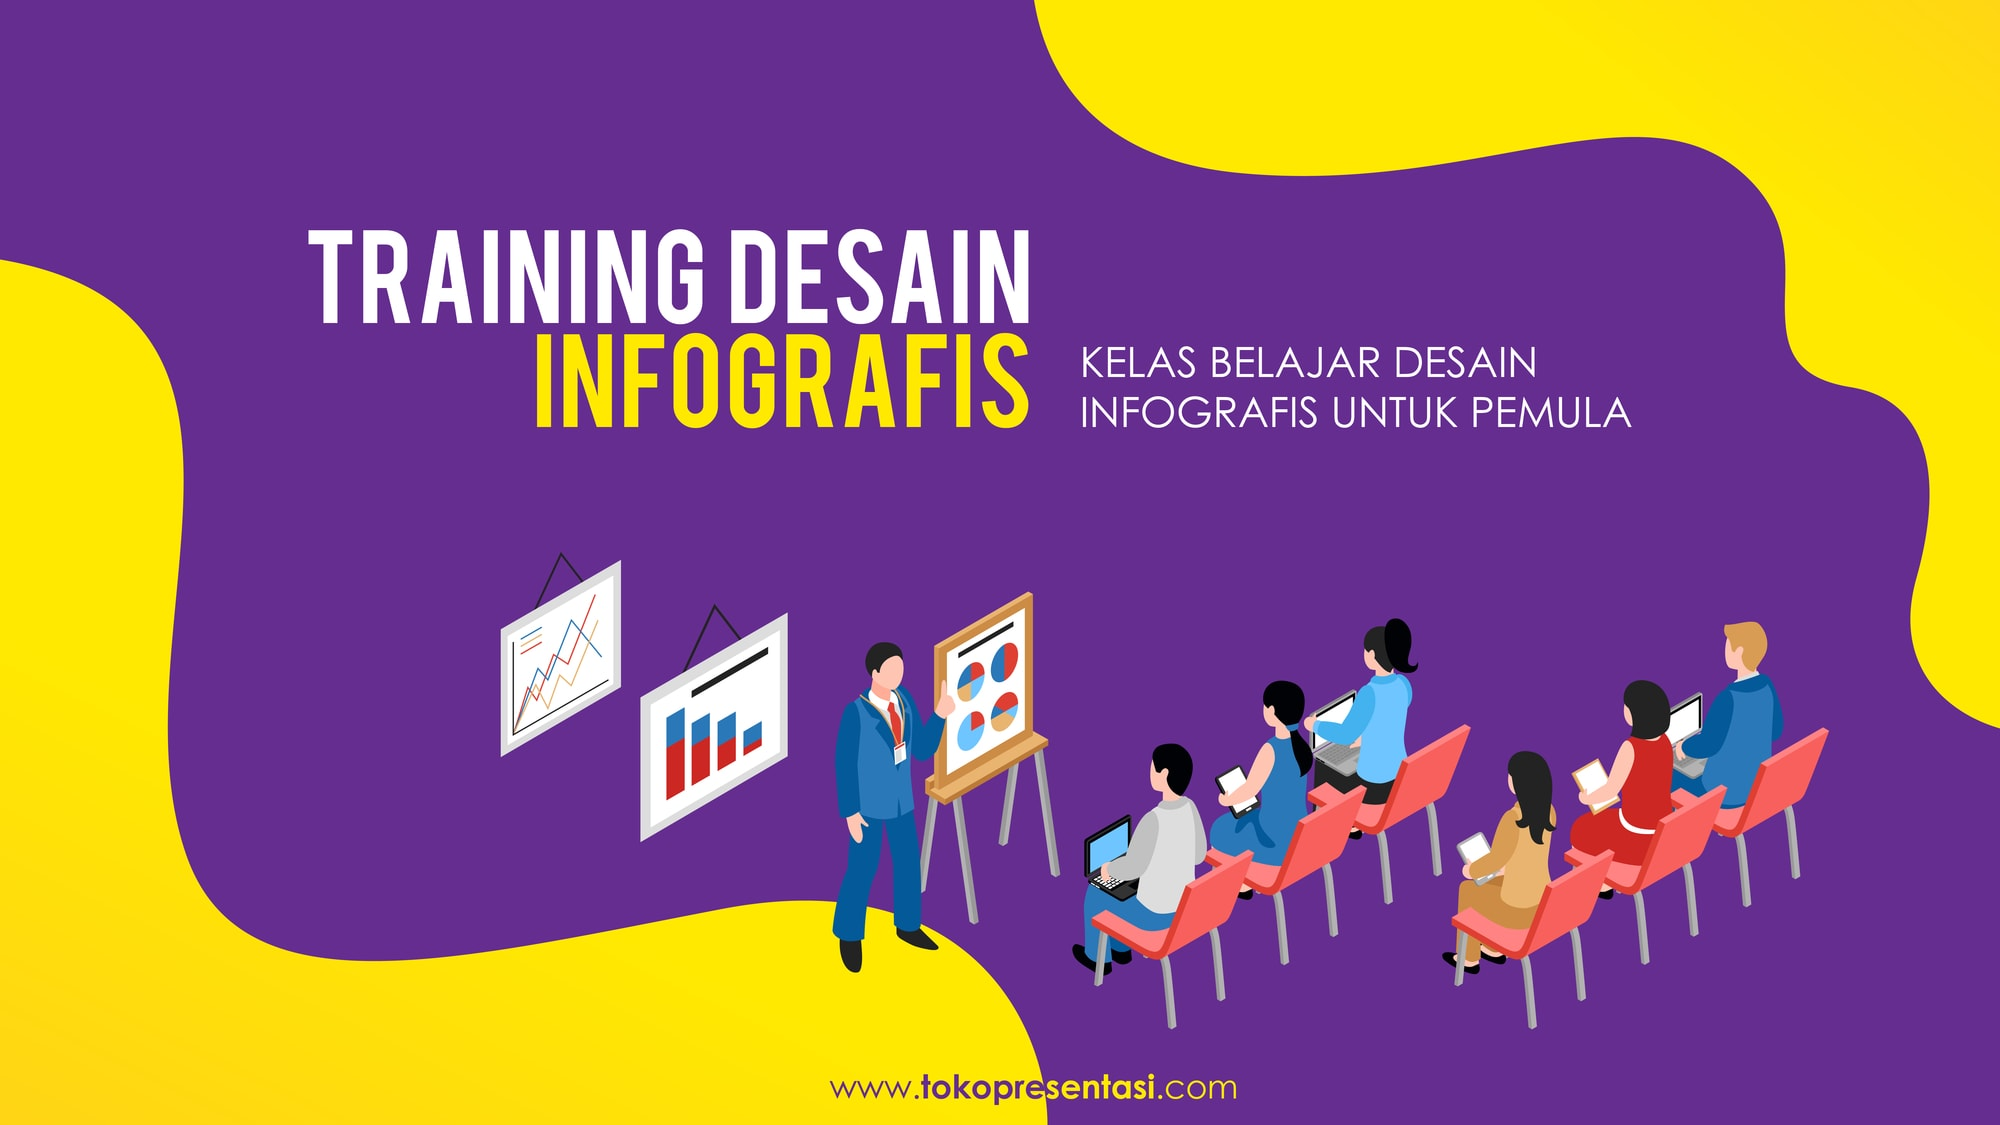 Pelatihan Training Desain Infografis PPT Corporate University Wijaya Karya Tokopresentasi